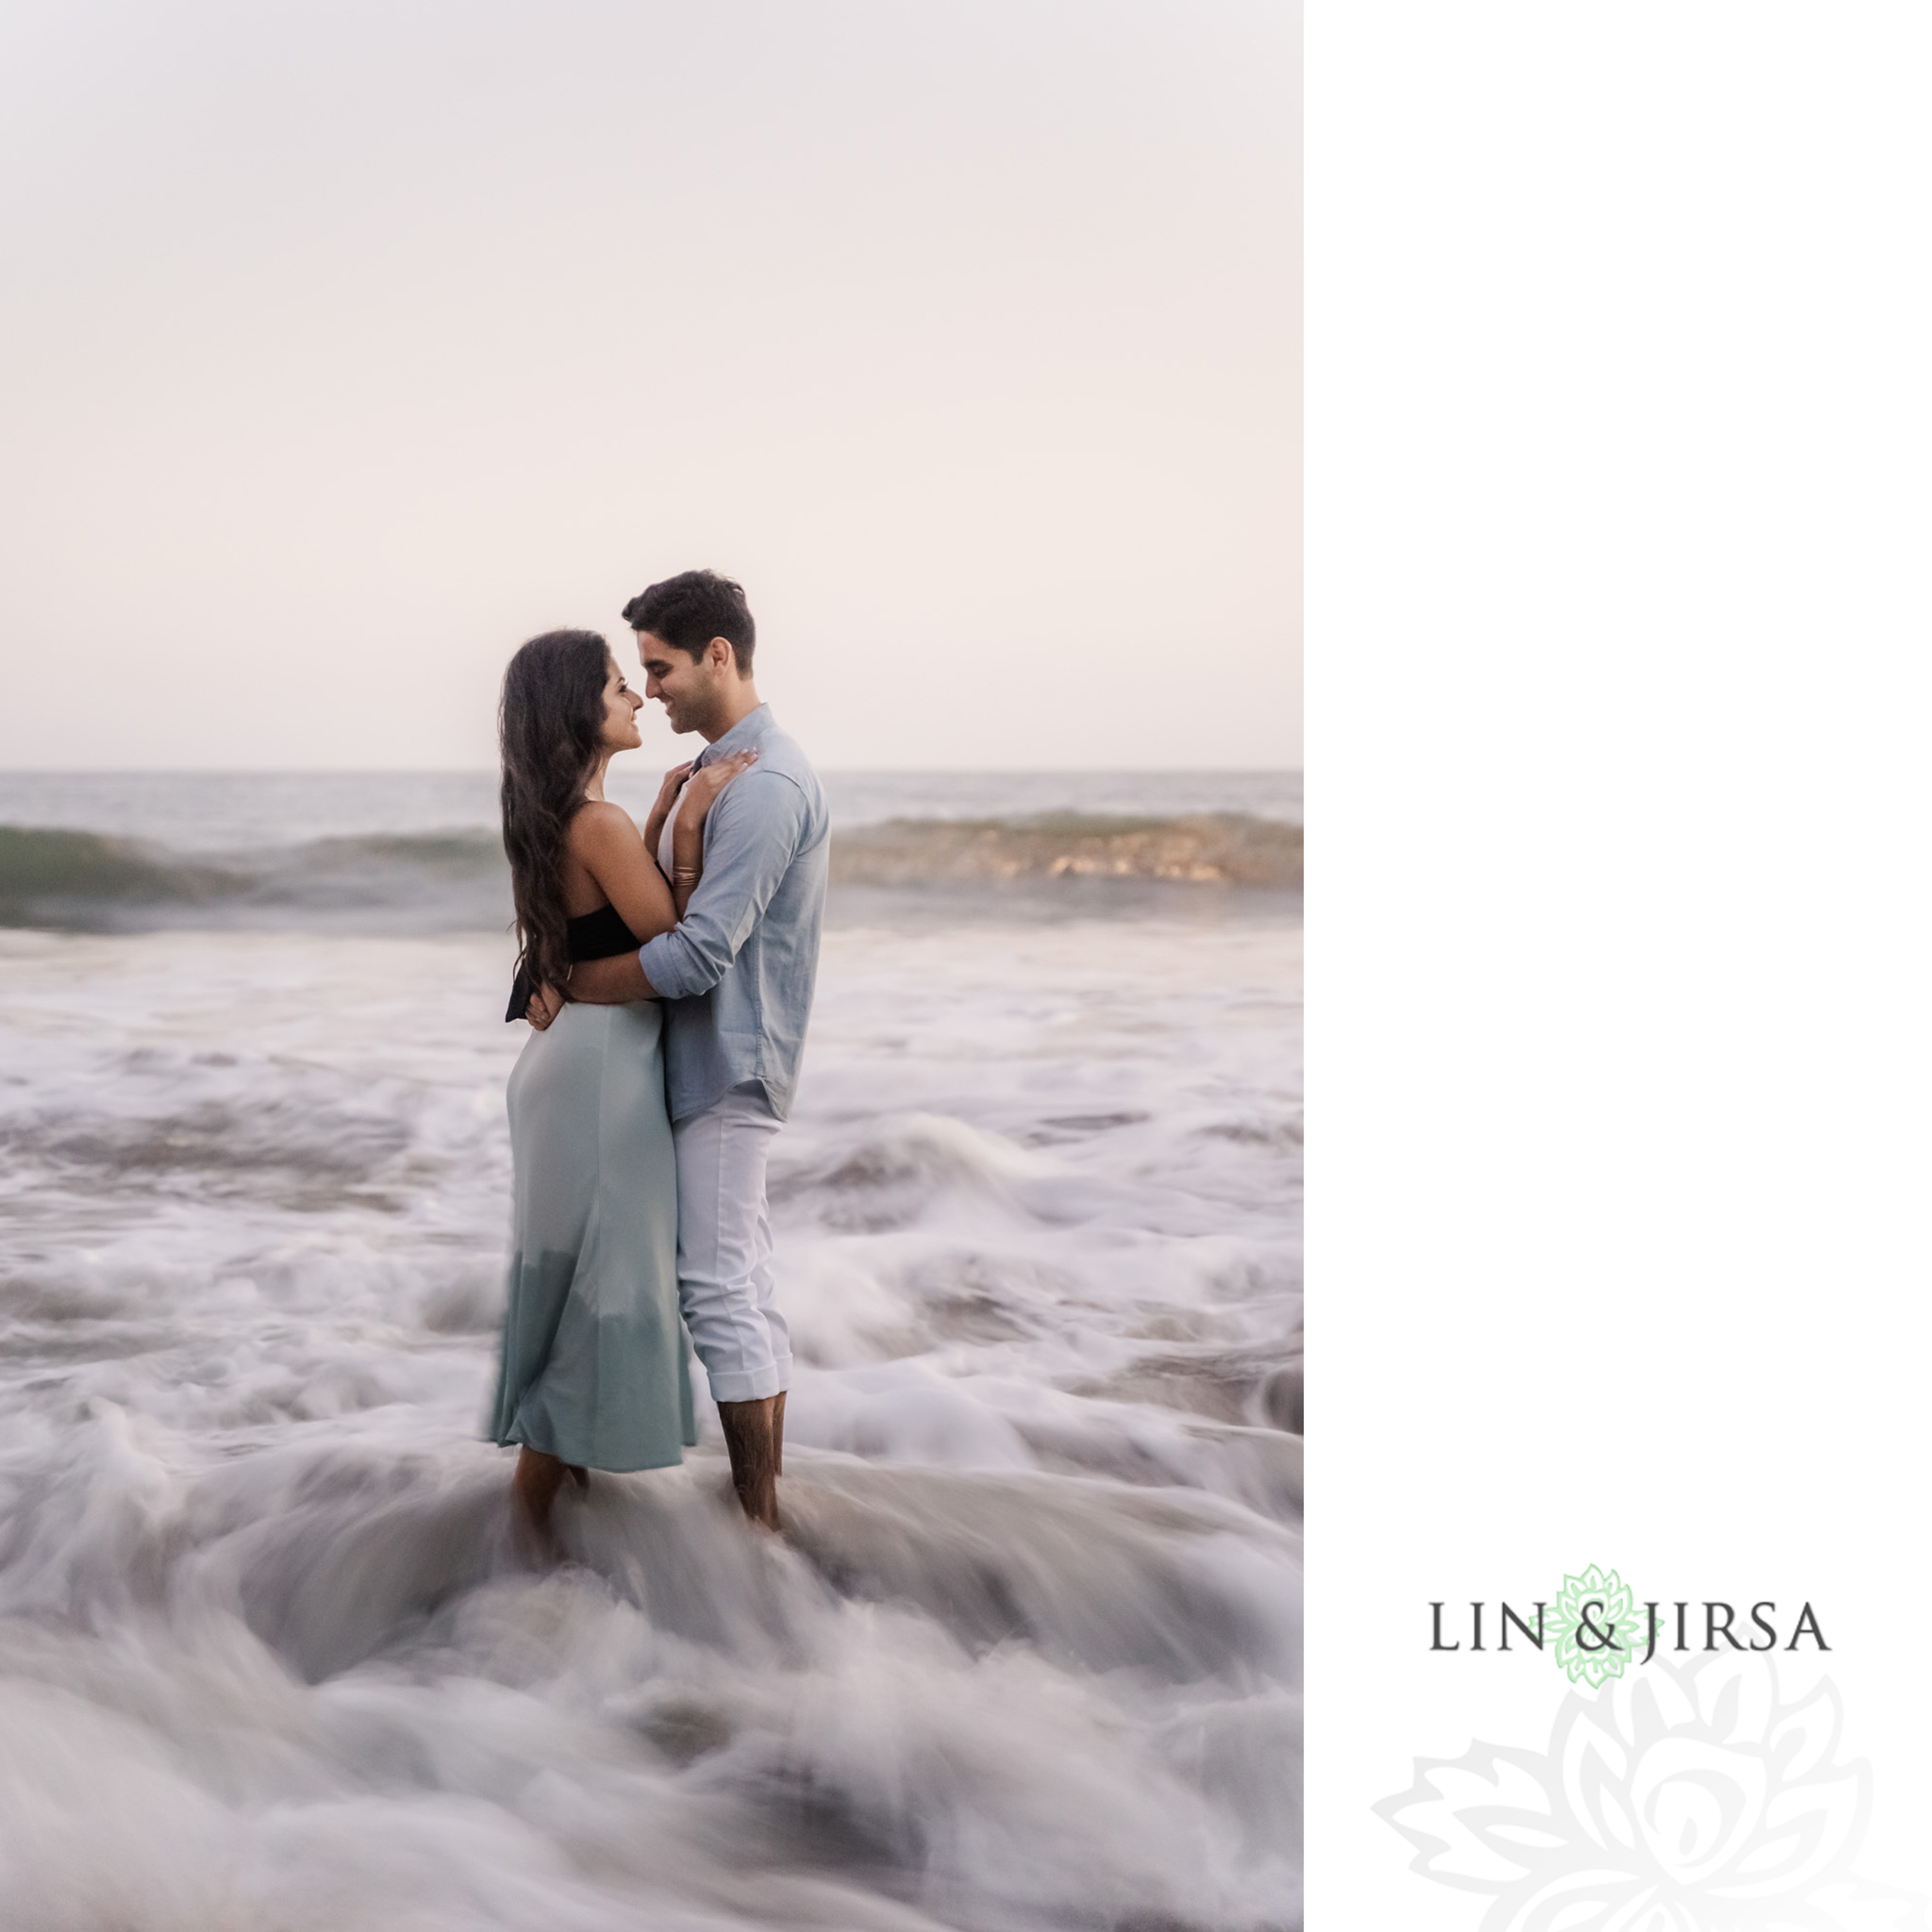 20 Leo Carillo State Beach Malibu Engagement Photographer